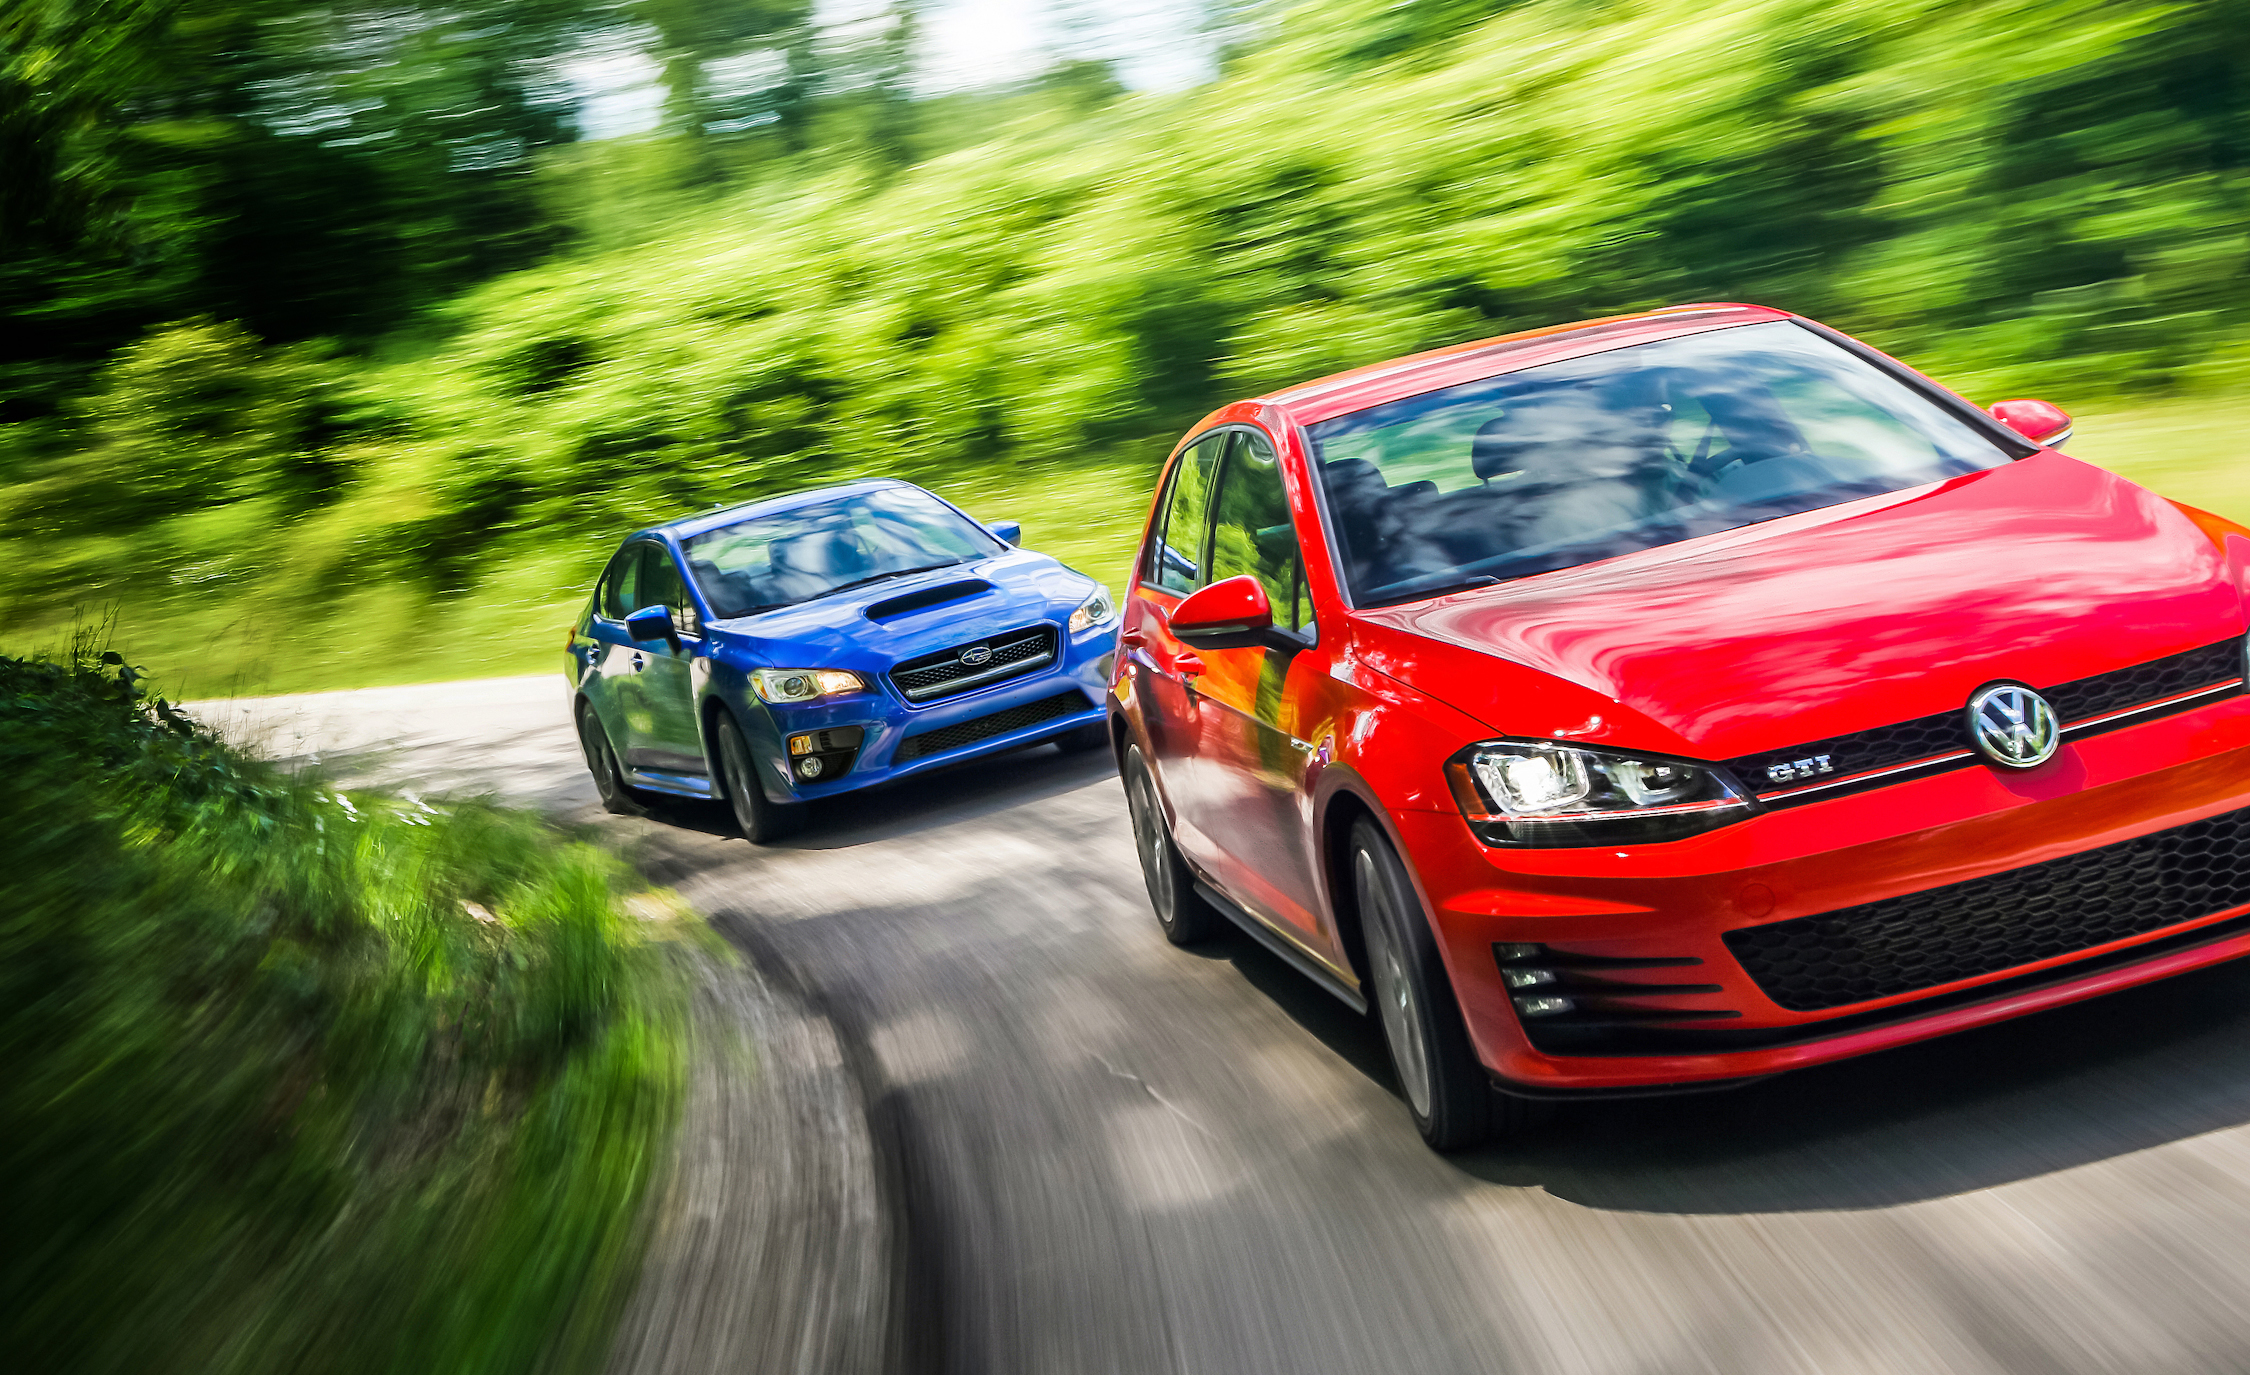 2015 Subaru WRX And 2015 Volkswagen GTI 5 Door (Photo 5 of 55)